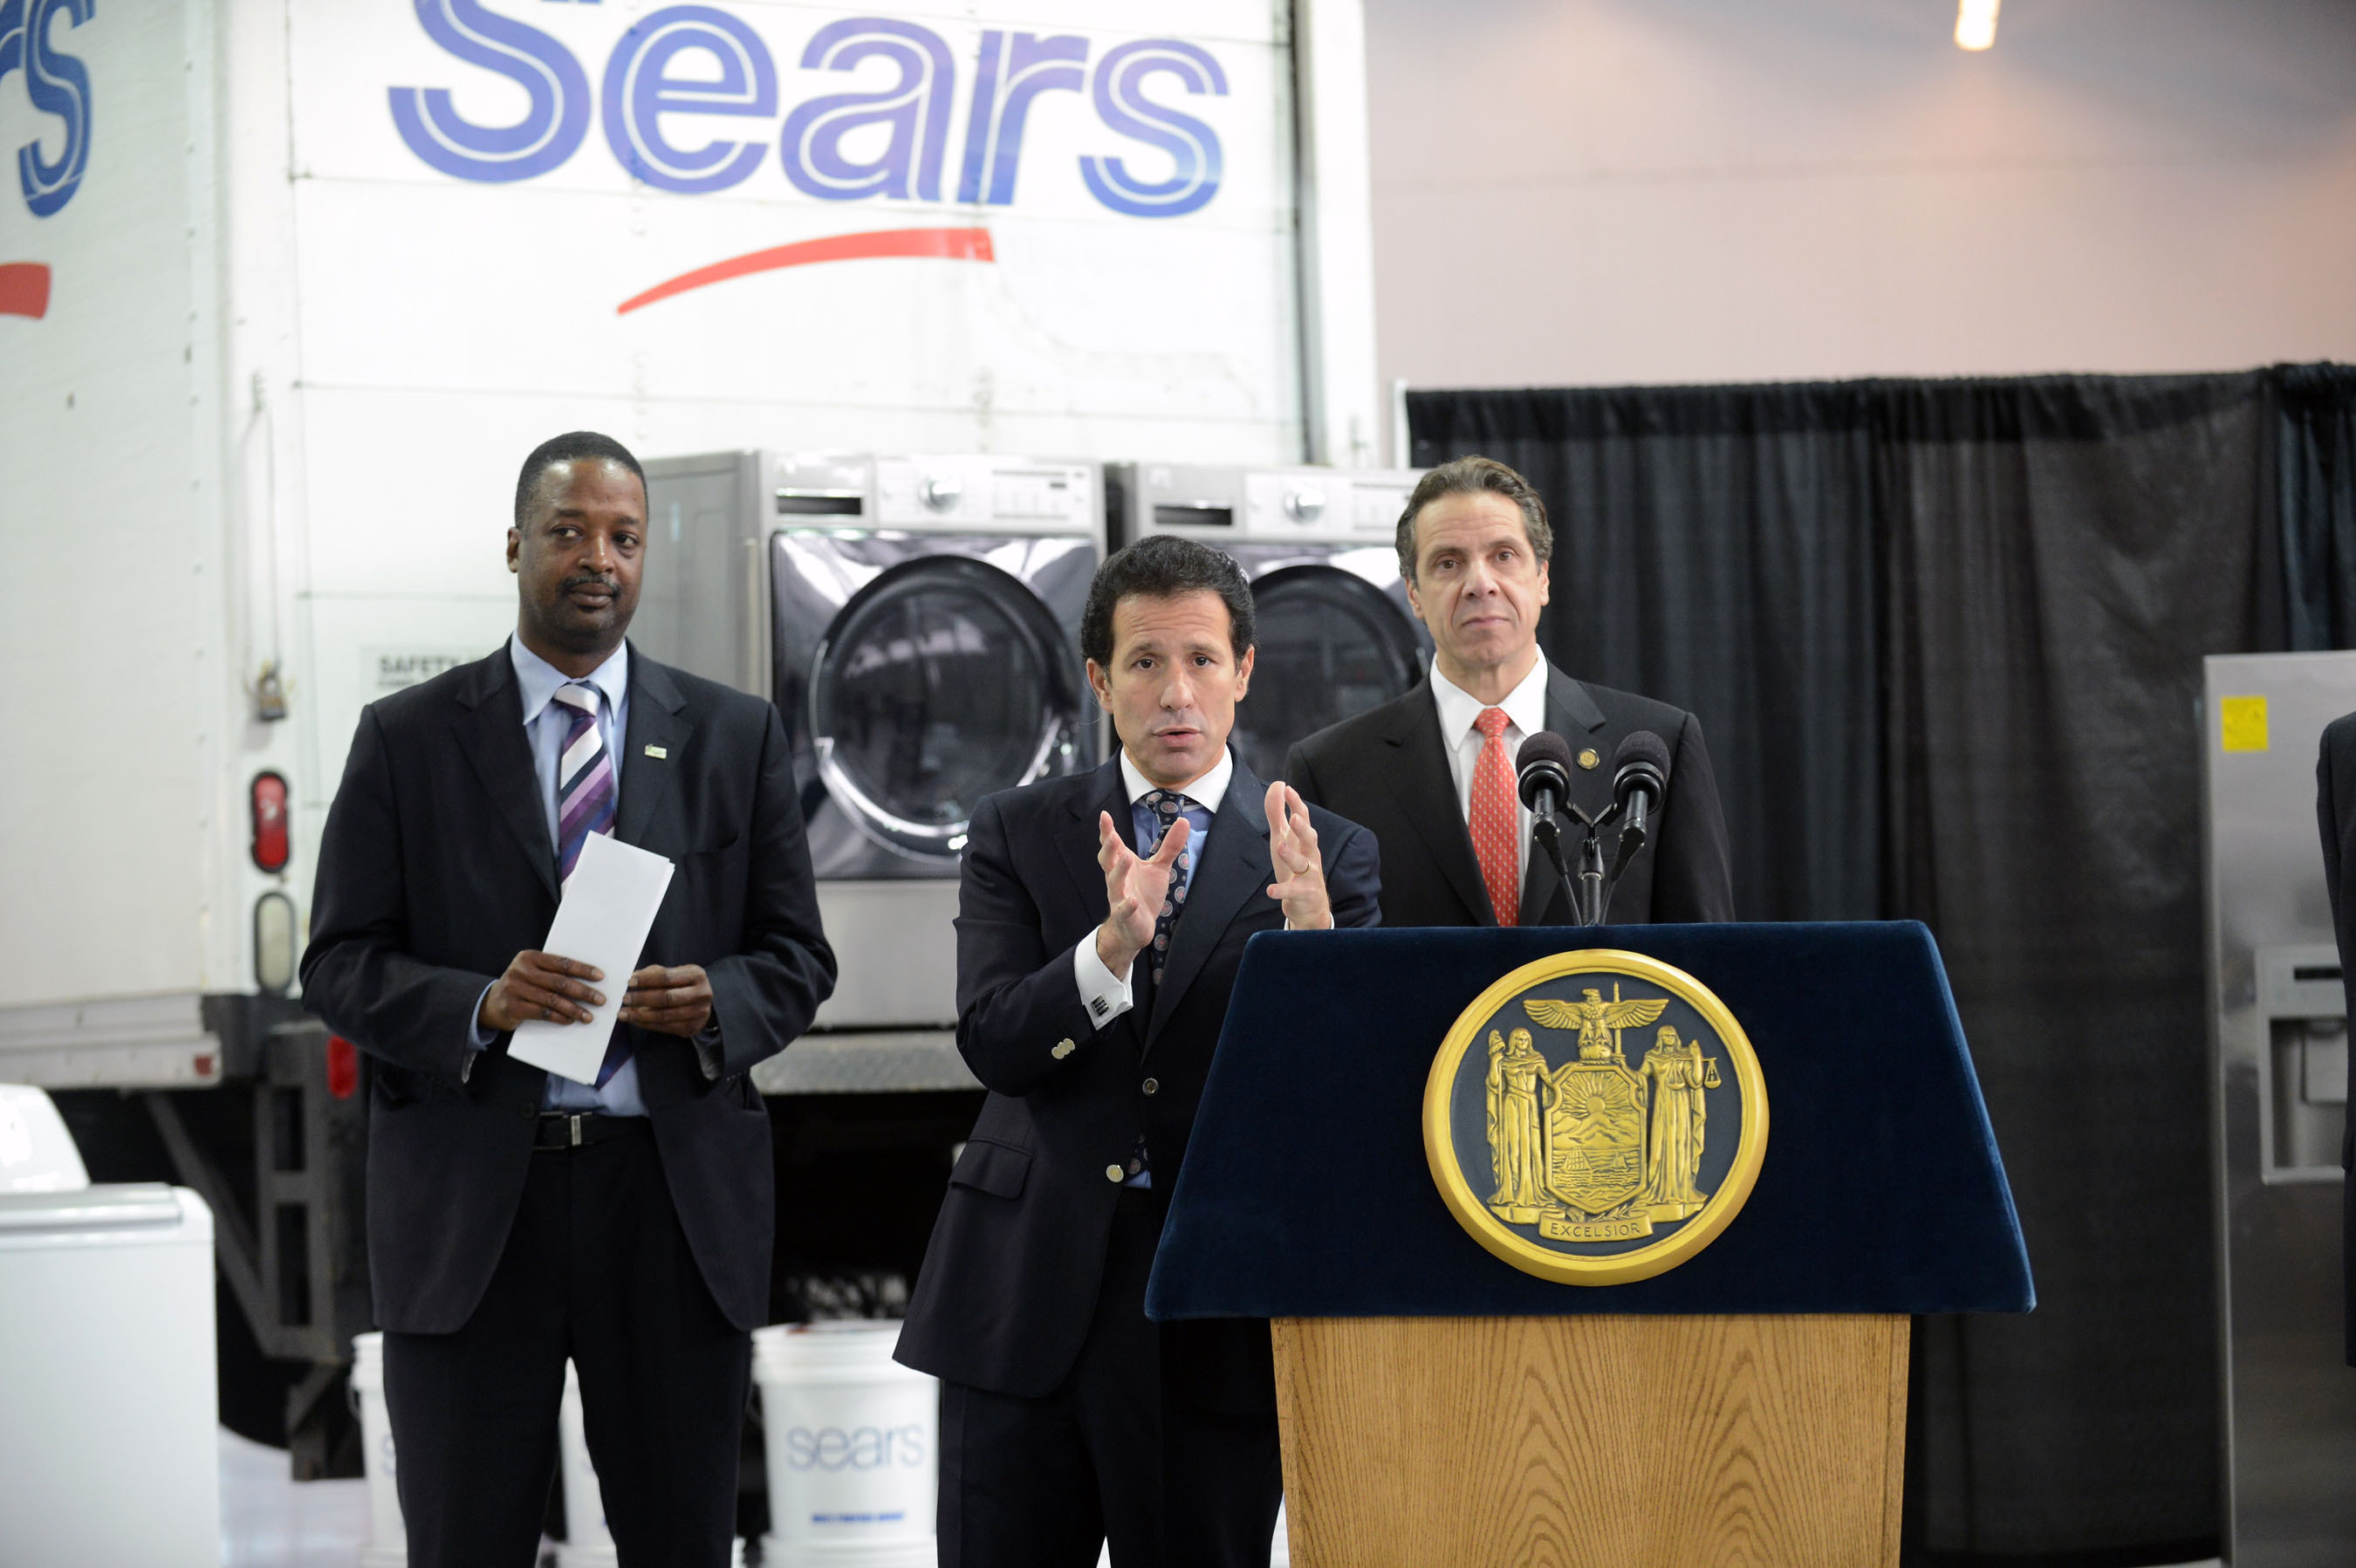 Gov. Andrew Cuomo, Sears President and CEO Lou D'Ambrosio and Rebuilding Together CEO Gary Officer working together to help the victims of Hurricane Sandy.  (PRNewsFoto/Sears Holdings Corporation)